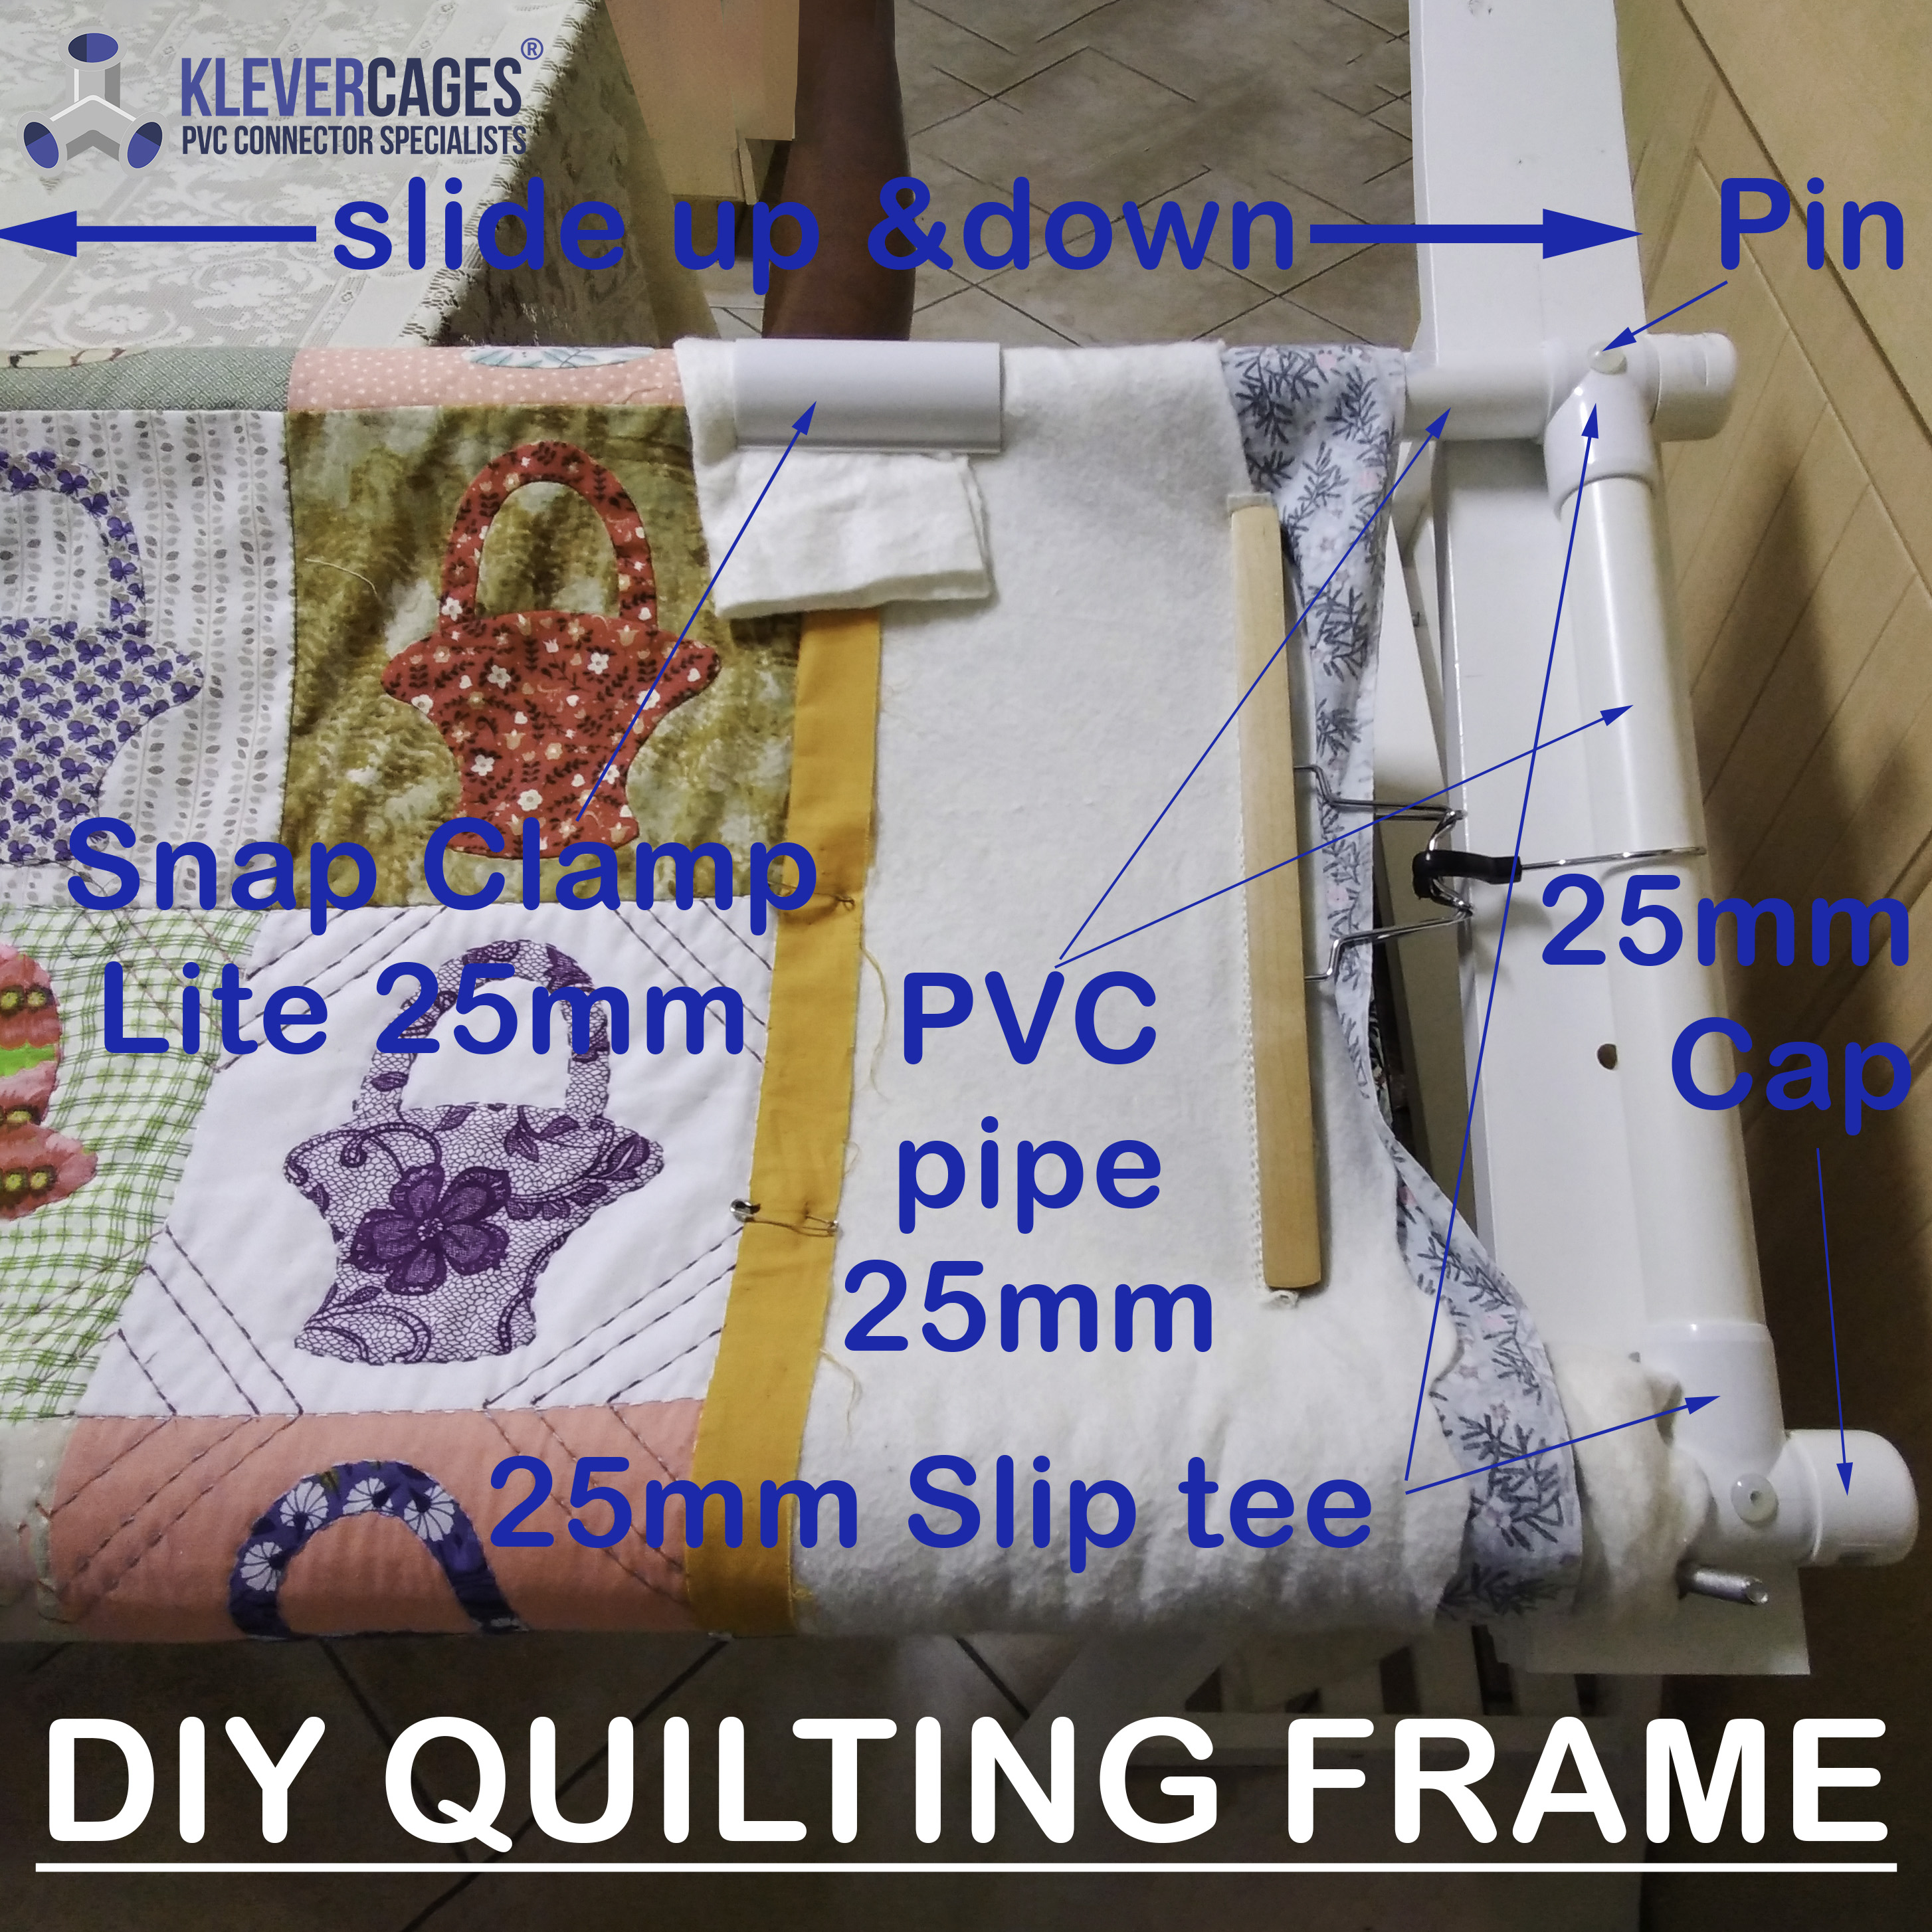 DIY quilting frame using slip tees, caps and PVC pipe from Klever Cages